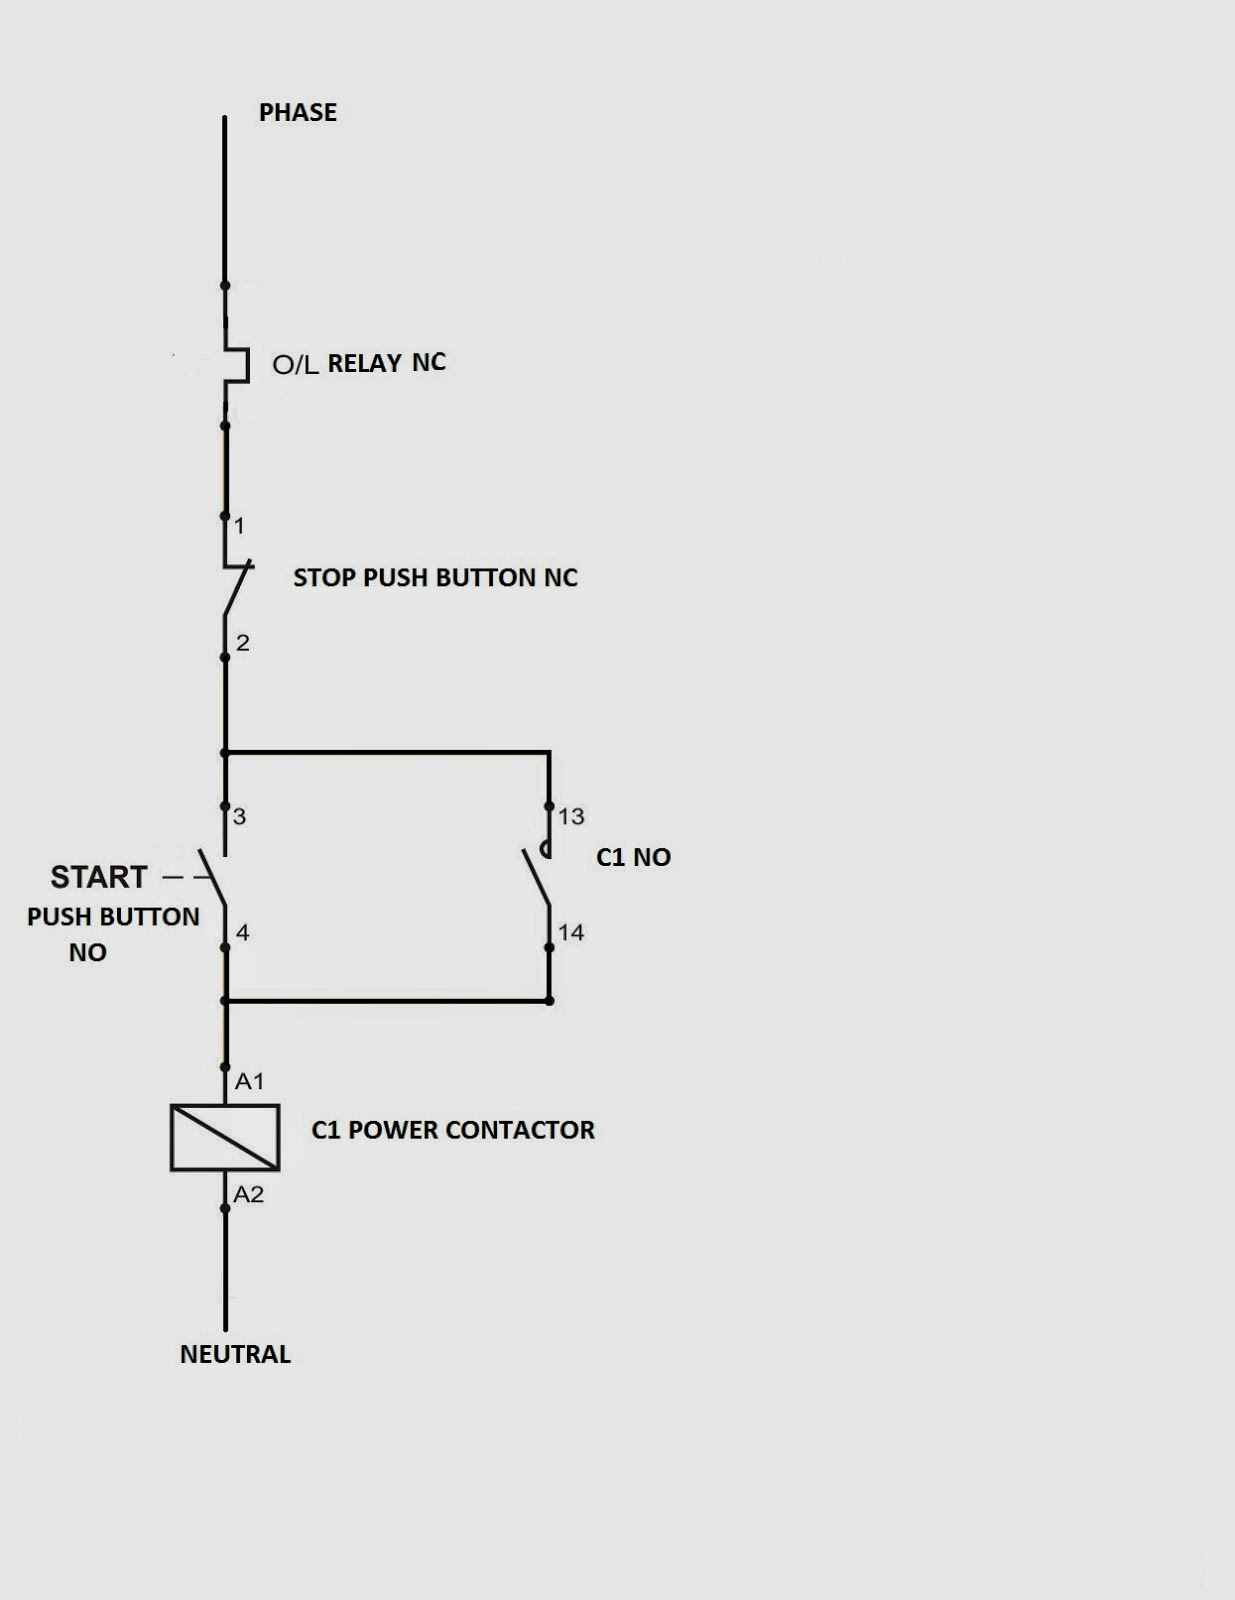 D O L Circuit Diagram - Wiring Diagram Motor Contactor Wiring Diagram on circuit diagram, motor relay wiring, starter switch diagram, motor stator winding diagram, motor starter schematic, allen bradley motor starter diagram, 3 phase motor starter diagram, rexroth piston pump parts diagram, motor control diagram, motor star delta starter diagram, motor starter control wiring, electrical contactor diagram, magnetic switch diagram, motor starter contactor, motor control contactor, single phase reversing contactor diagram, mechanically held lighting contactor diagram, motor schematic diagrams, 3 phase power diagram, ac contactor diagram,